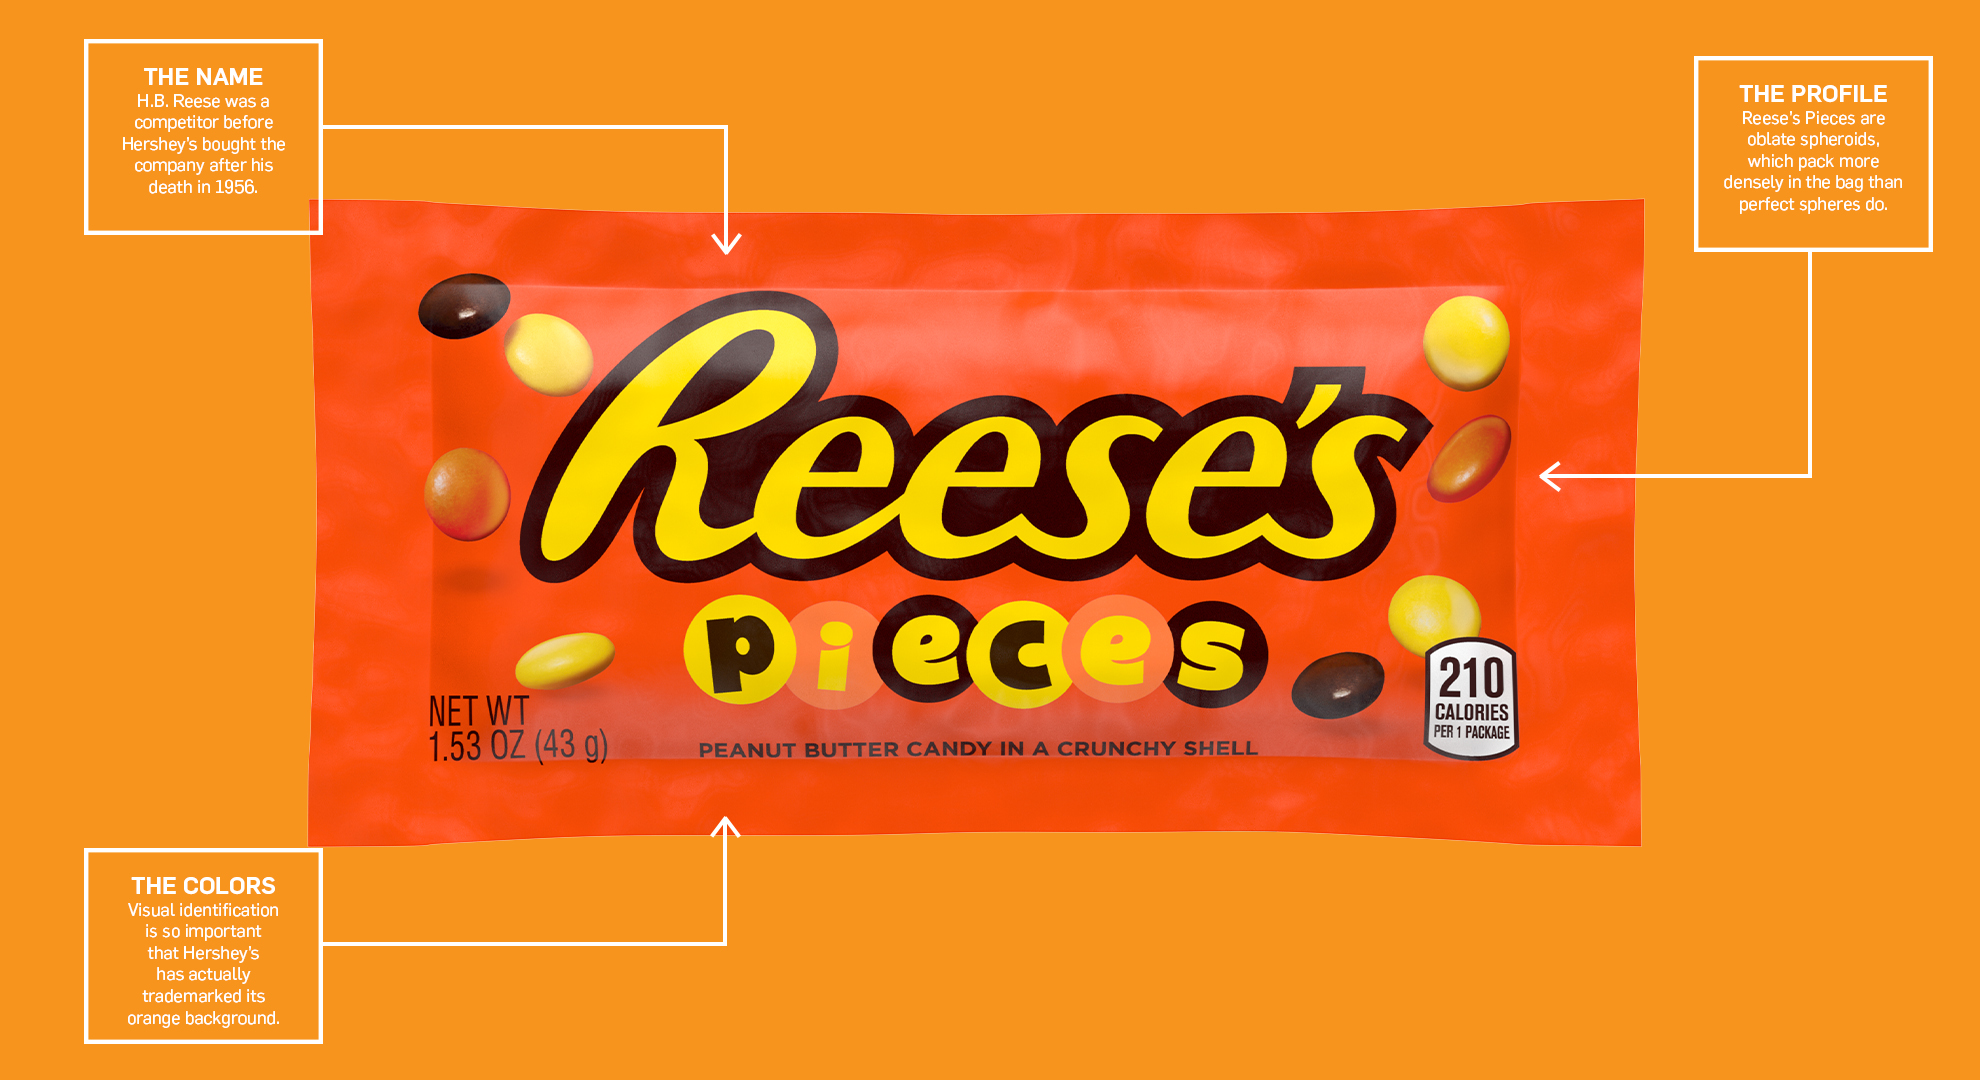 a bag of reese's pieces